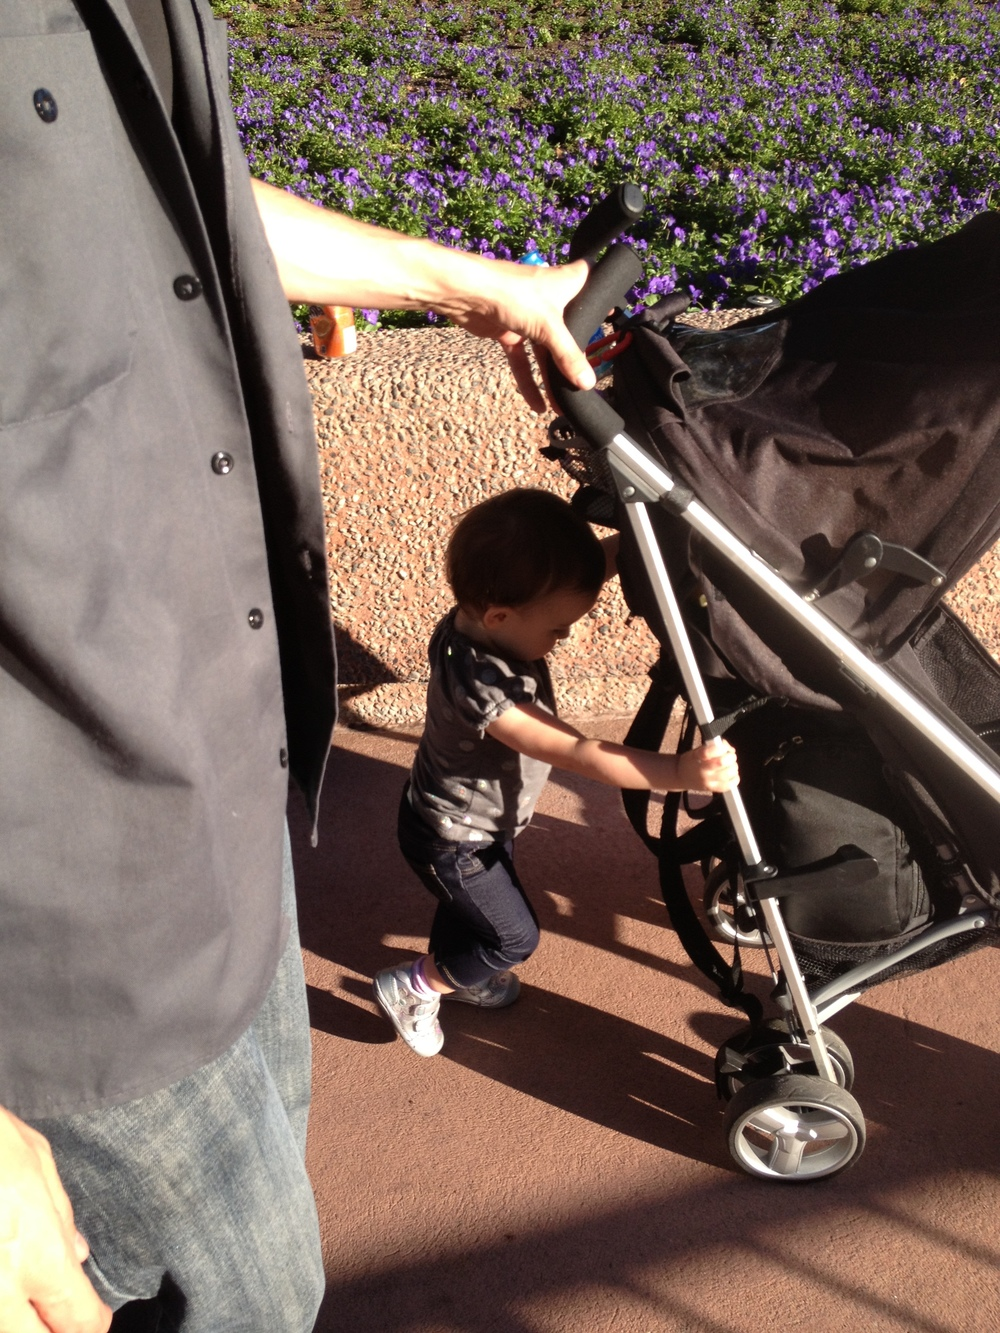 pushing her own stroller or nothing!